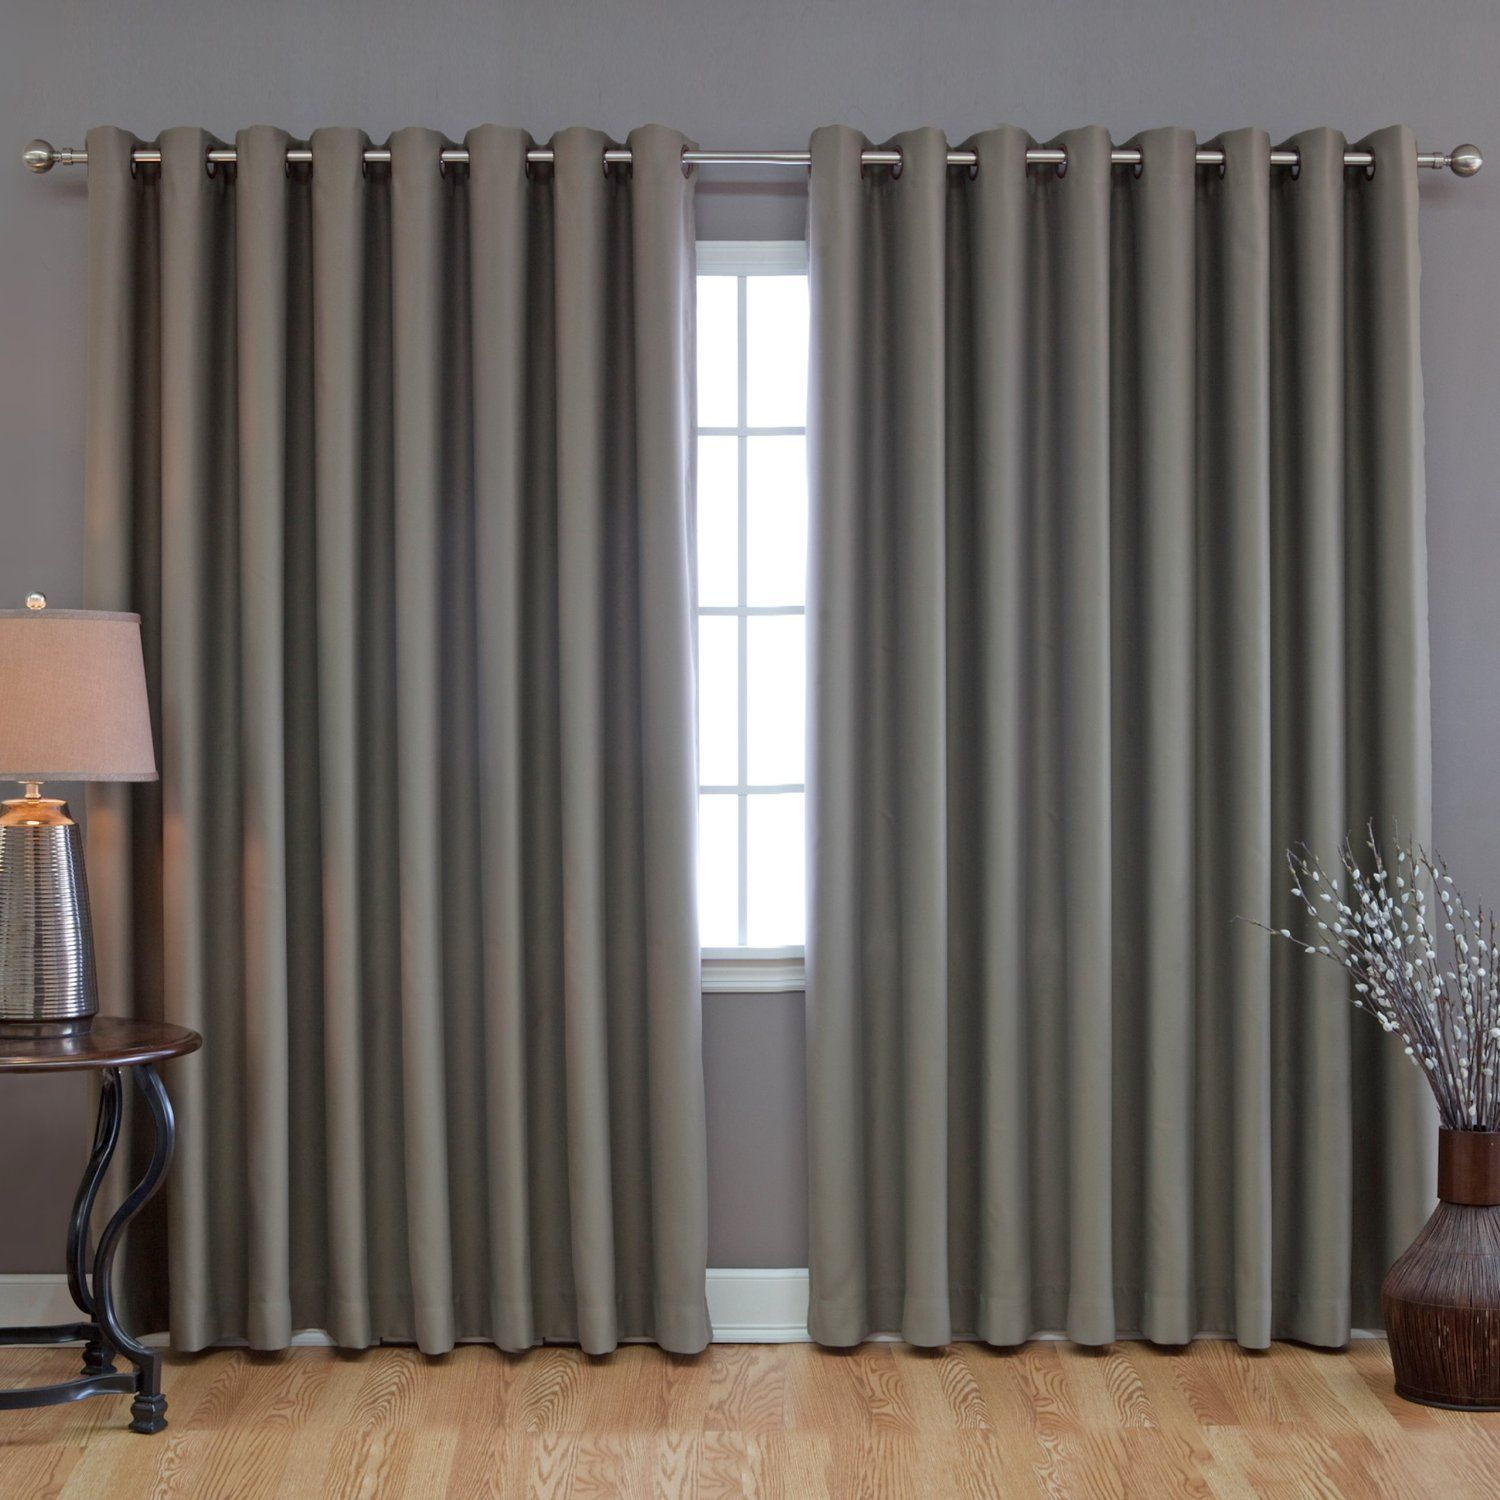 popular curtain ideas for patio doors : best patio curtain ideas